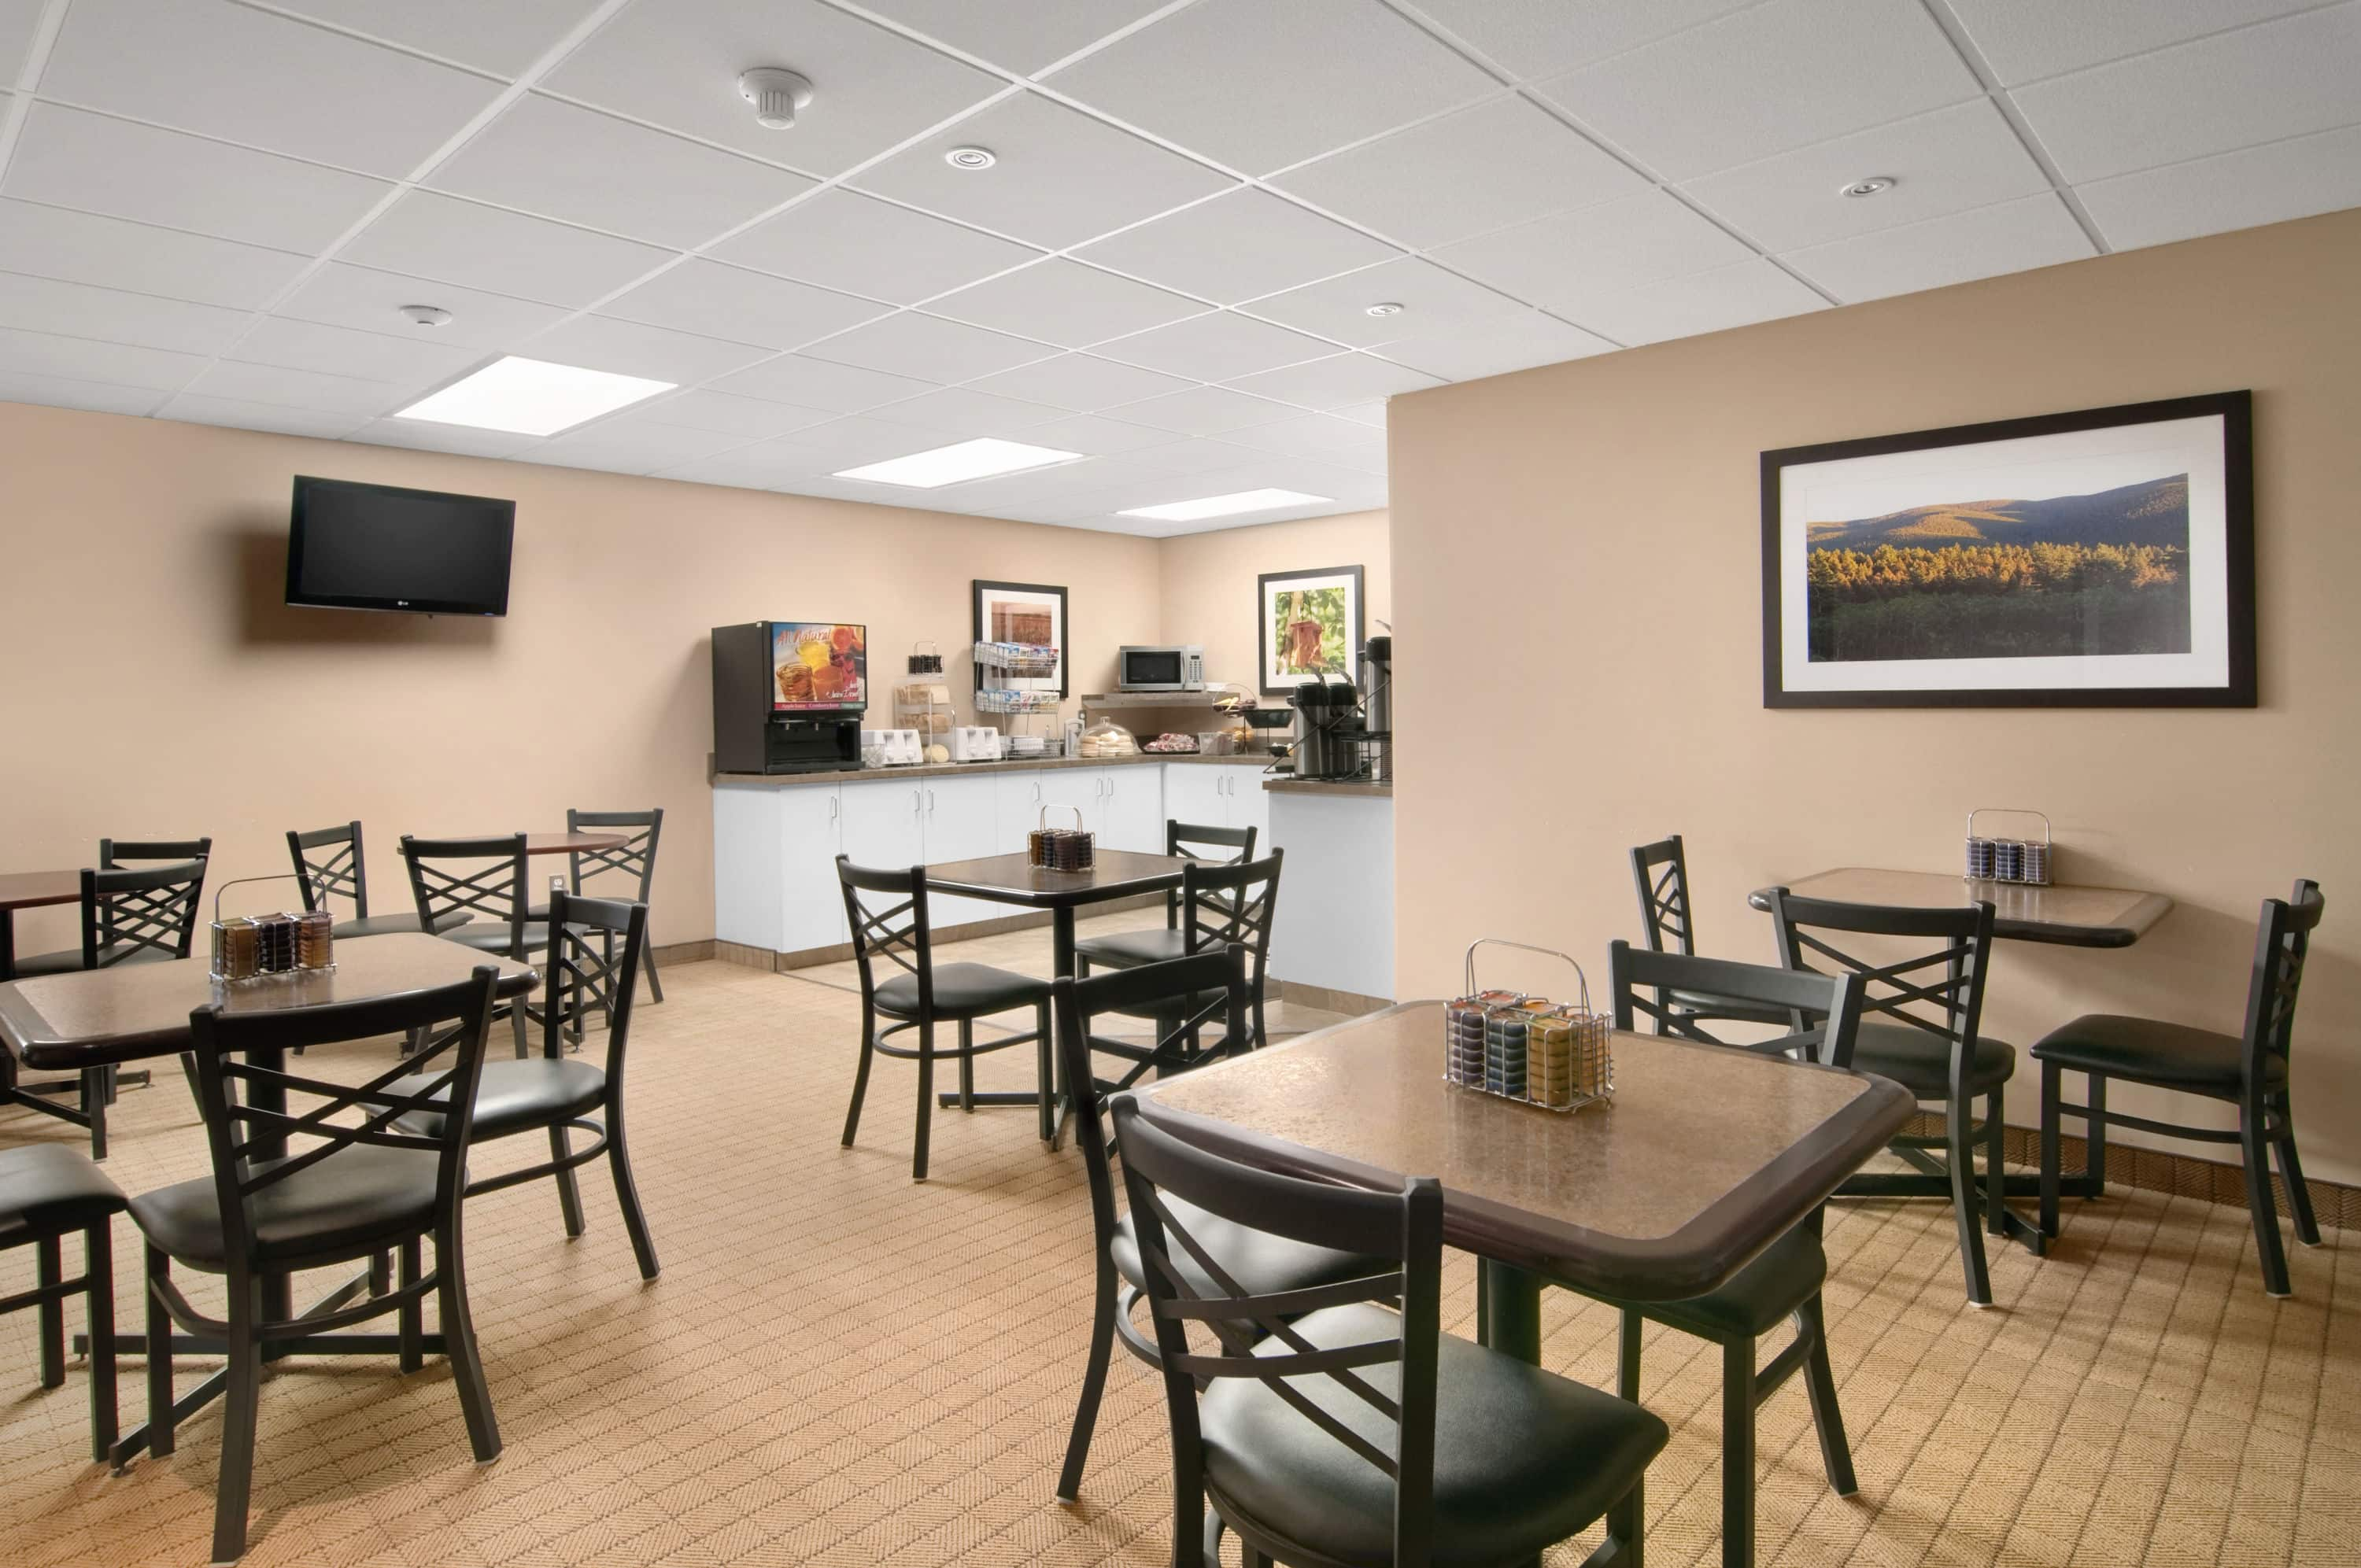 Furniture stores in red deer ab - Affordable Travelodge Red Deer Restaurant In Red Deer Alberta With Furniture Stores Red Deer Alberta